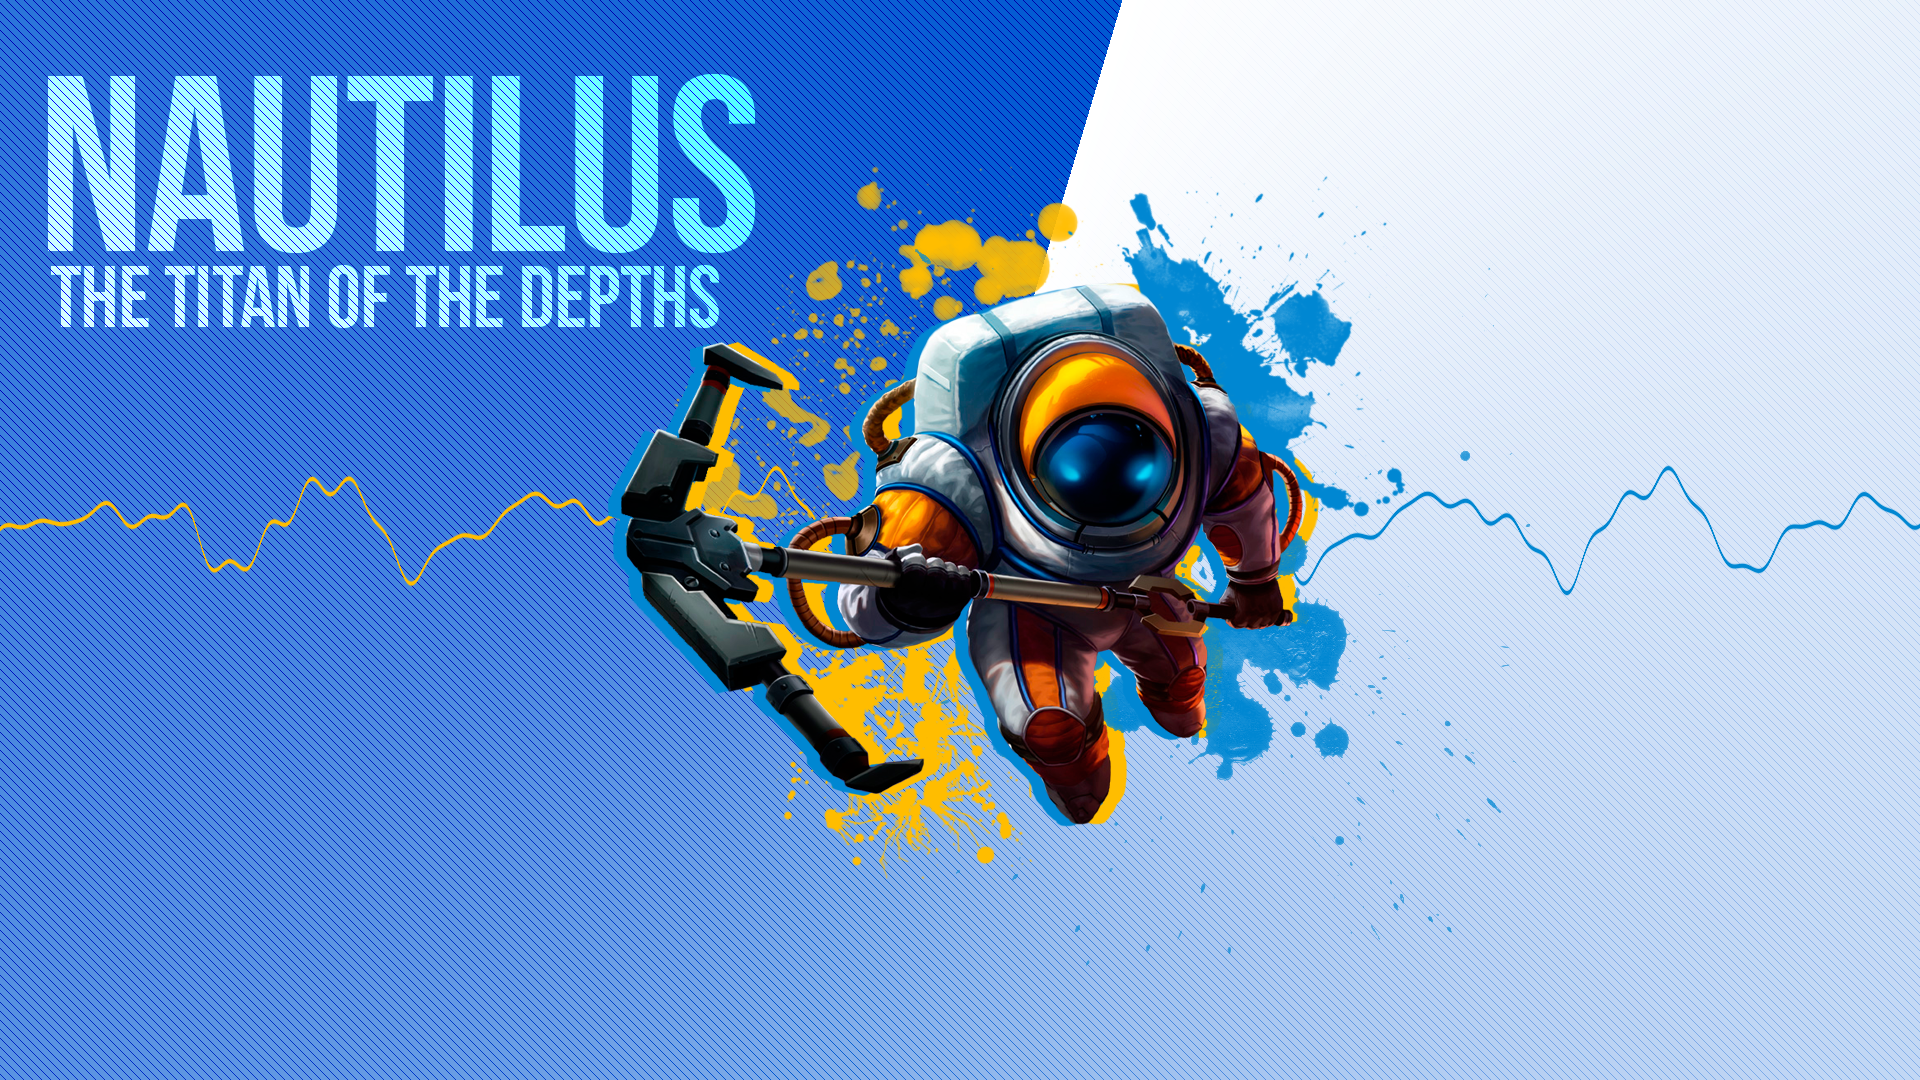 AstroNautilus wallpaper